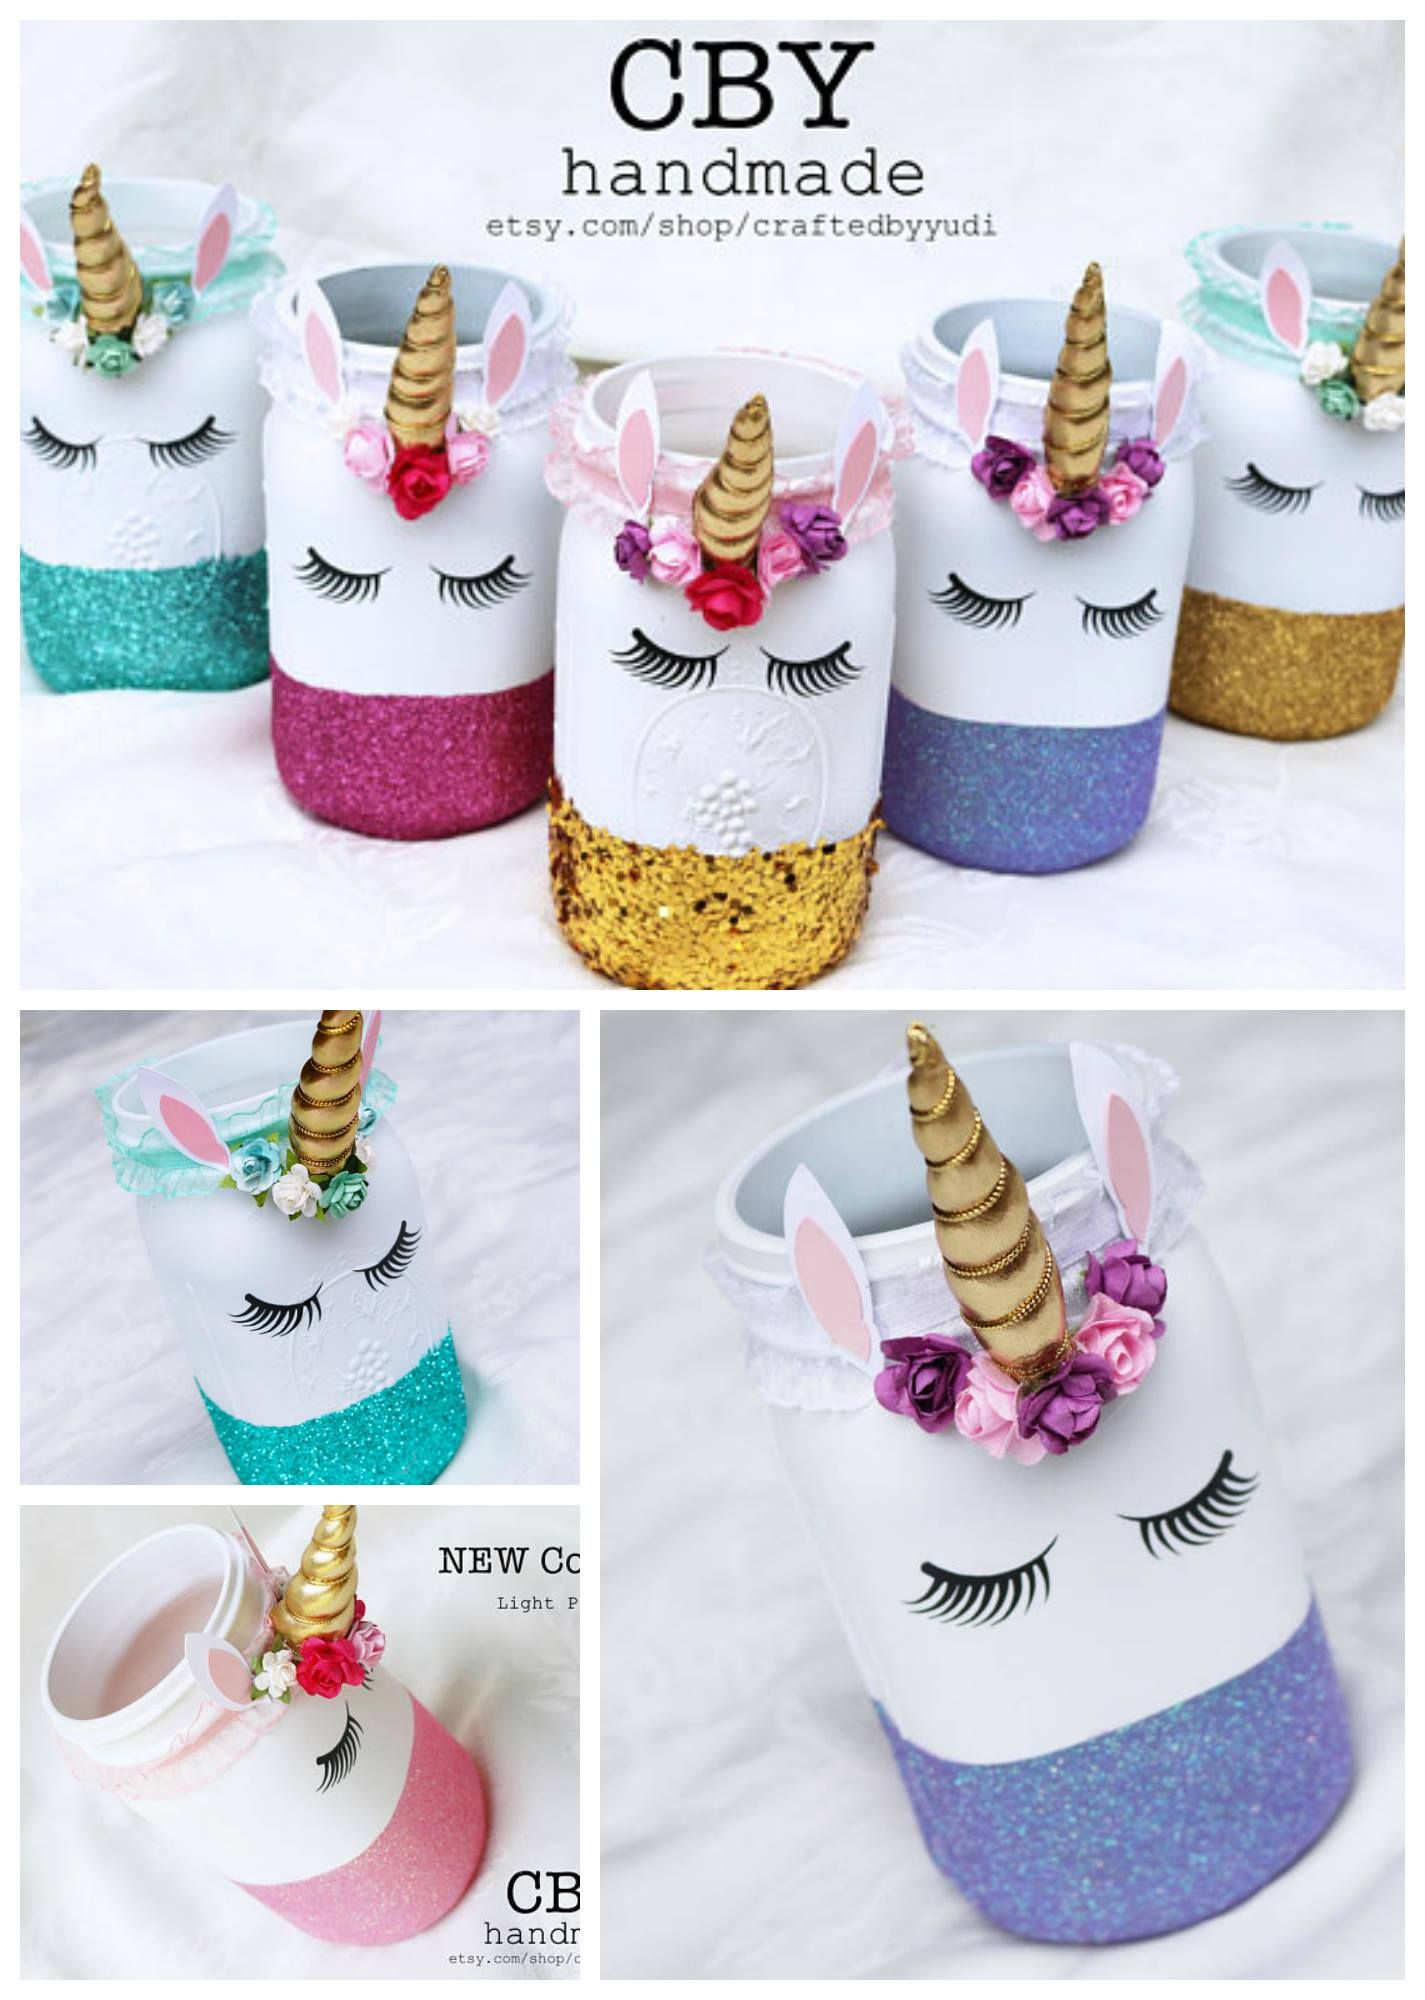 Fun Unicorn Mason Jars You Can Use Them For Storing Makeup Brushes Paintbrushes Pencils Etc Cute For A Party Af Mason Jar Diy Unicorn Crafts Moms Crafts